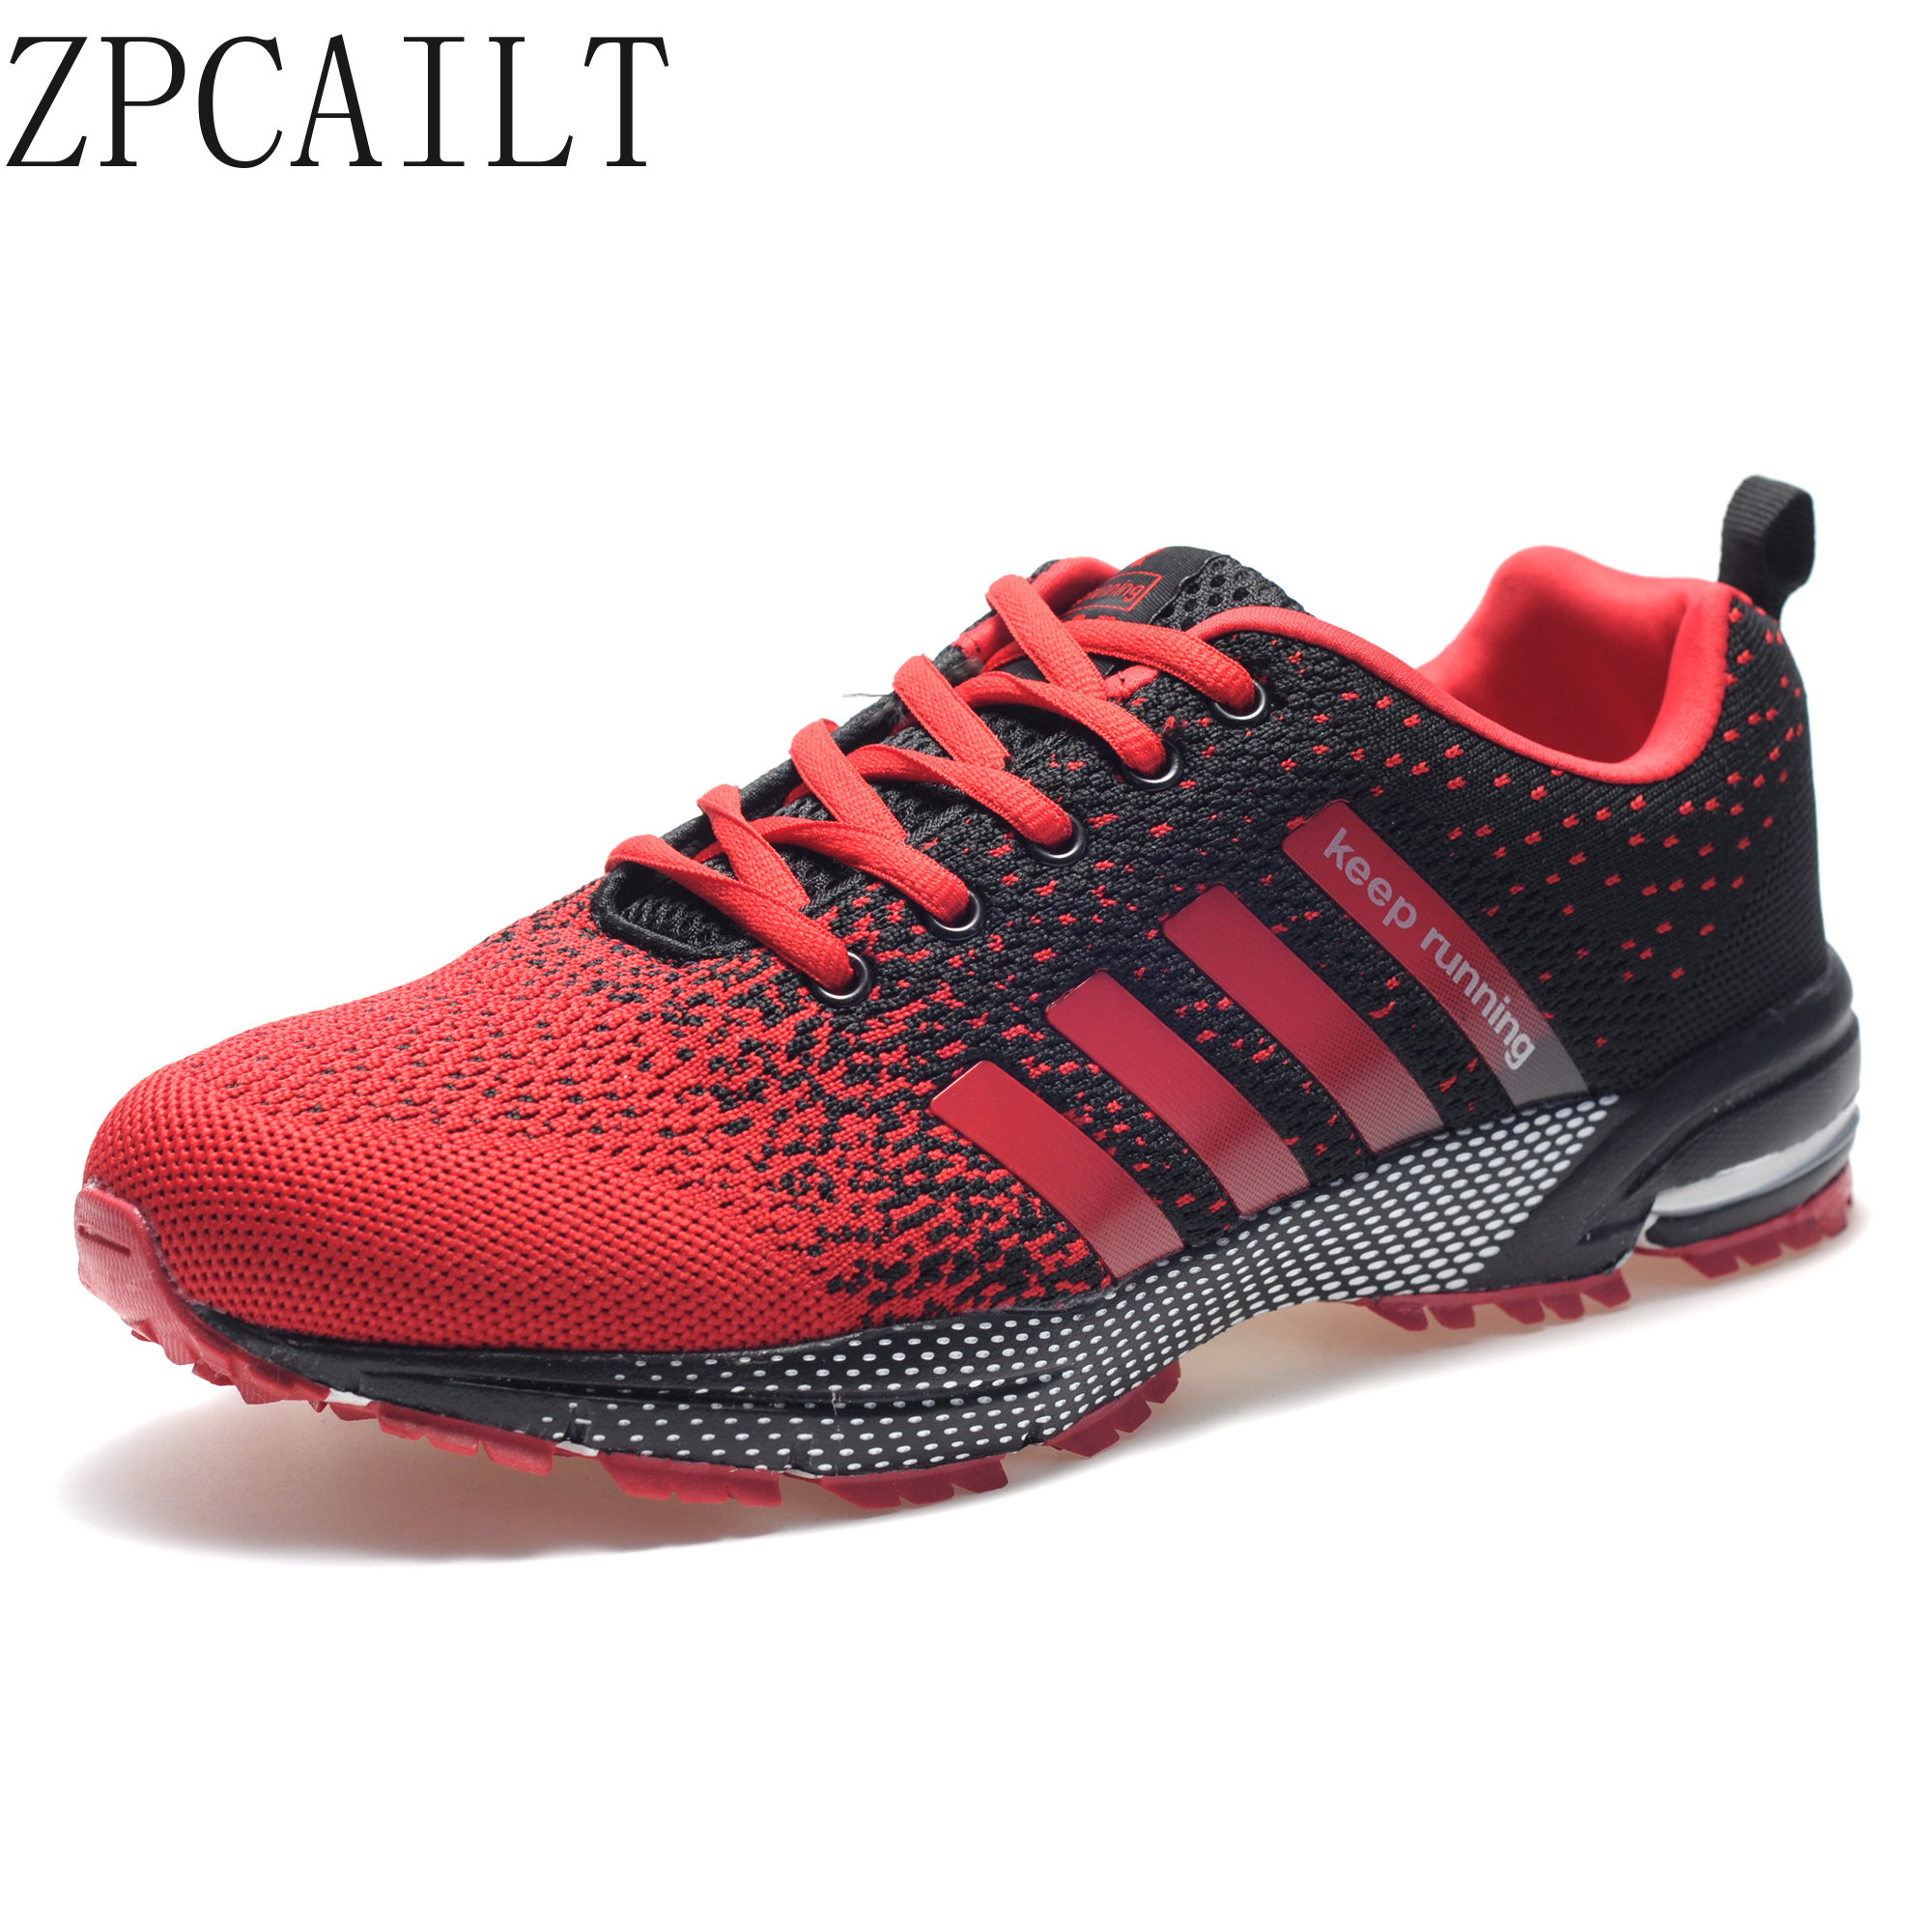 Big Size 48 Men Running Shoes Outdoor Sports Shoes Lightweight Breathable Sneakers Women Comfortable Athletic Training Footwear